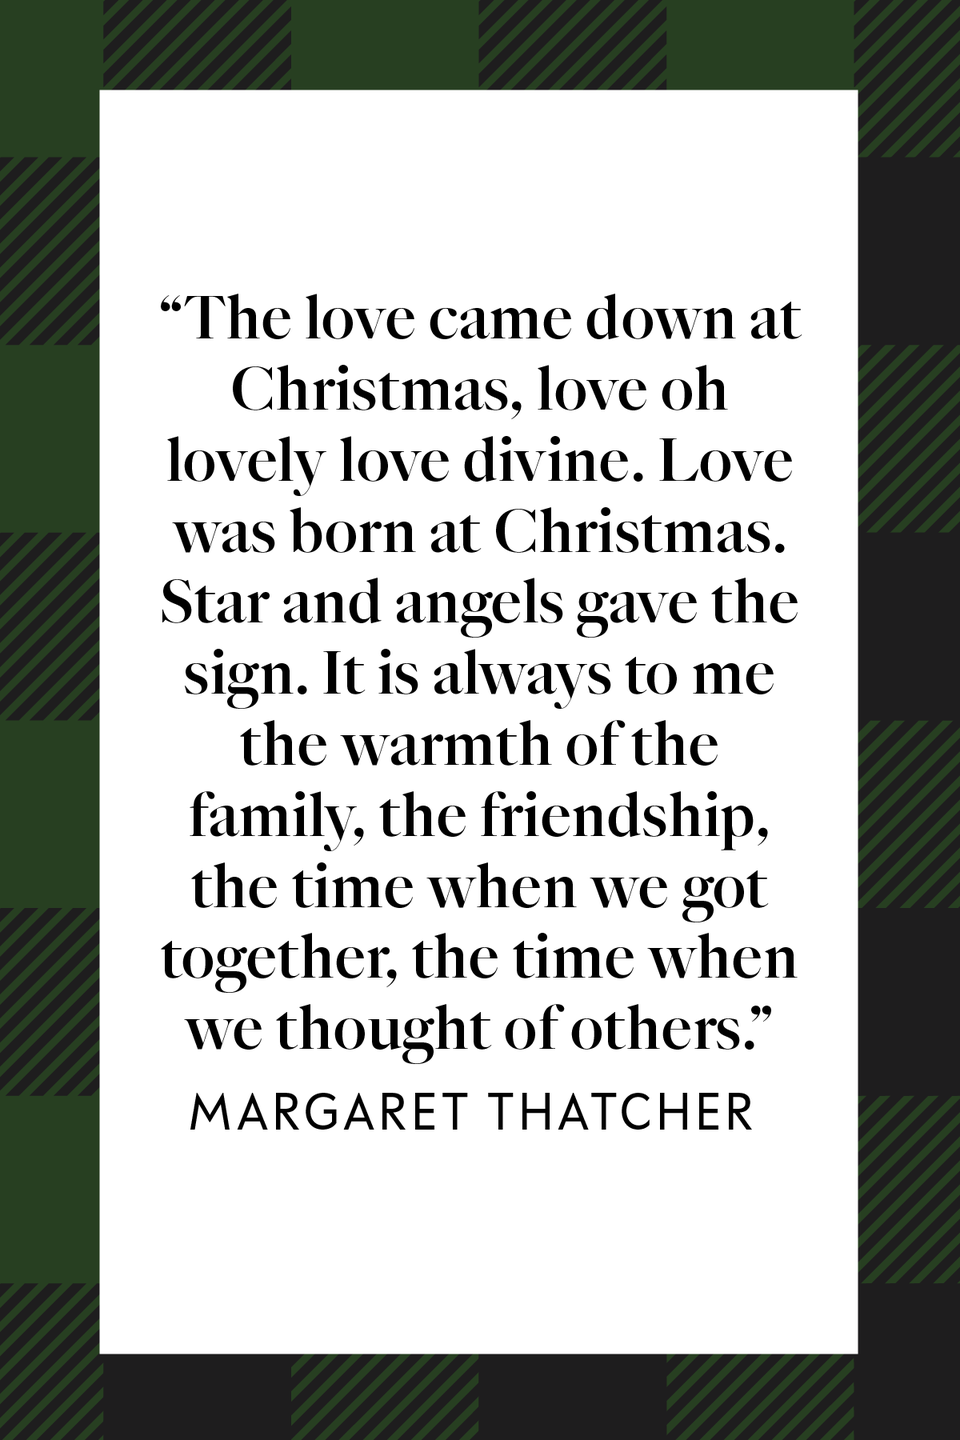 "<p>""The love came down at Christmas, love oh lovely love divine. Love was born at Christmas. Star and angels gave the sign. It is always to me the warmth of the family, the friendship, the time when we got together, the time when we thought of others,"" former UK Prime Minister Margaret Thatcher said during an<a href=""https://www.margaretthatcher.org/document/105496"" rel=""nofollow noopener"" target=""_blank"" data-ylk=""slk:interview for Hospital Radio"" class=""link rapid-noclick-resp""> interview for Hospital Radio</a> for her annual Christmas message in 1983.</p>"